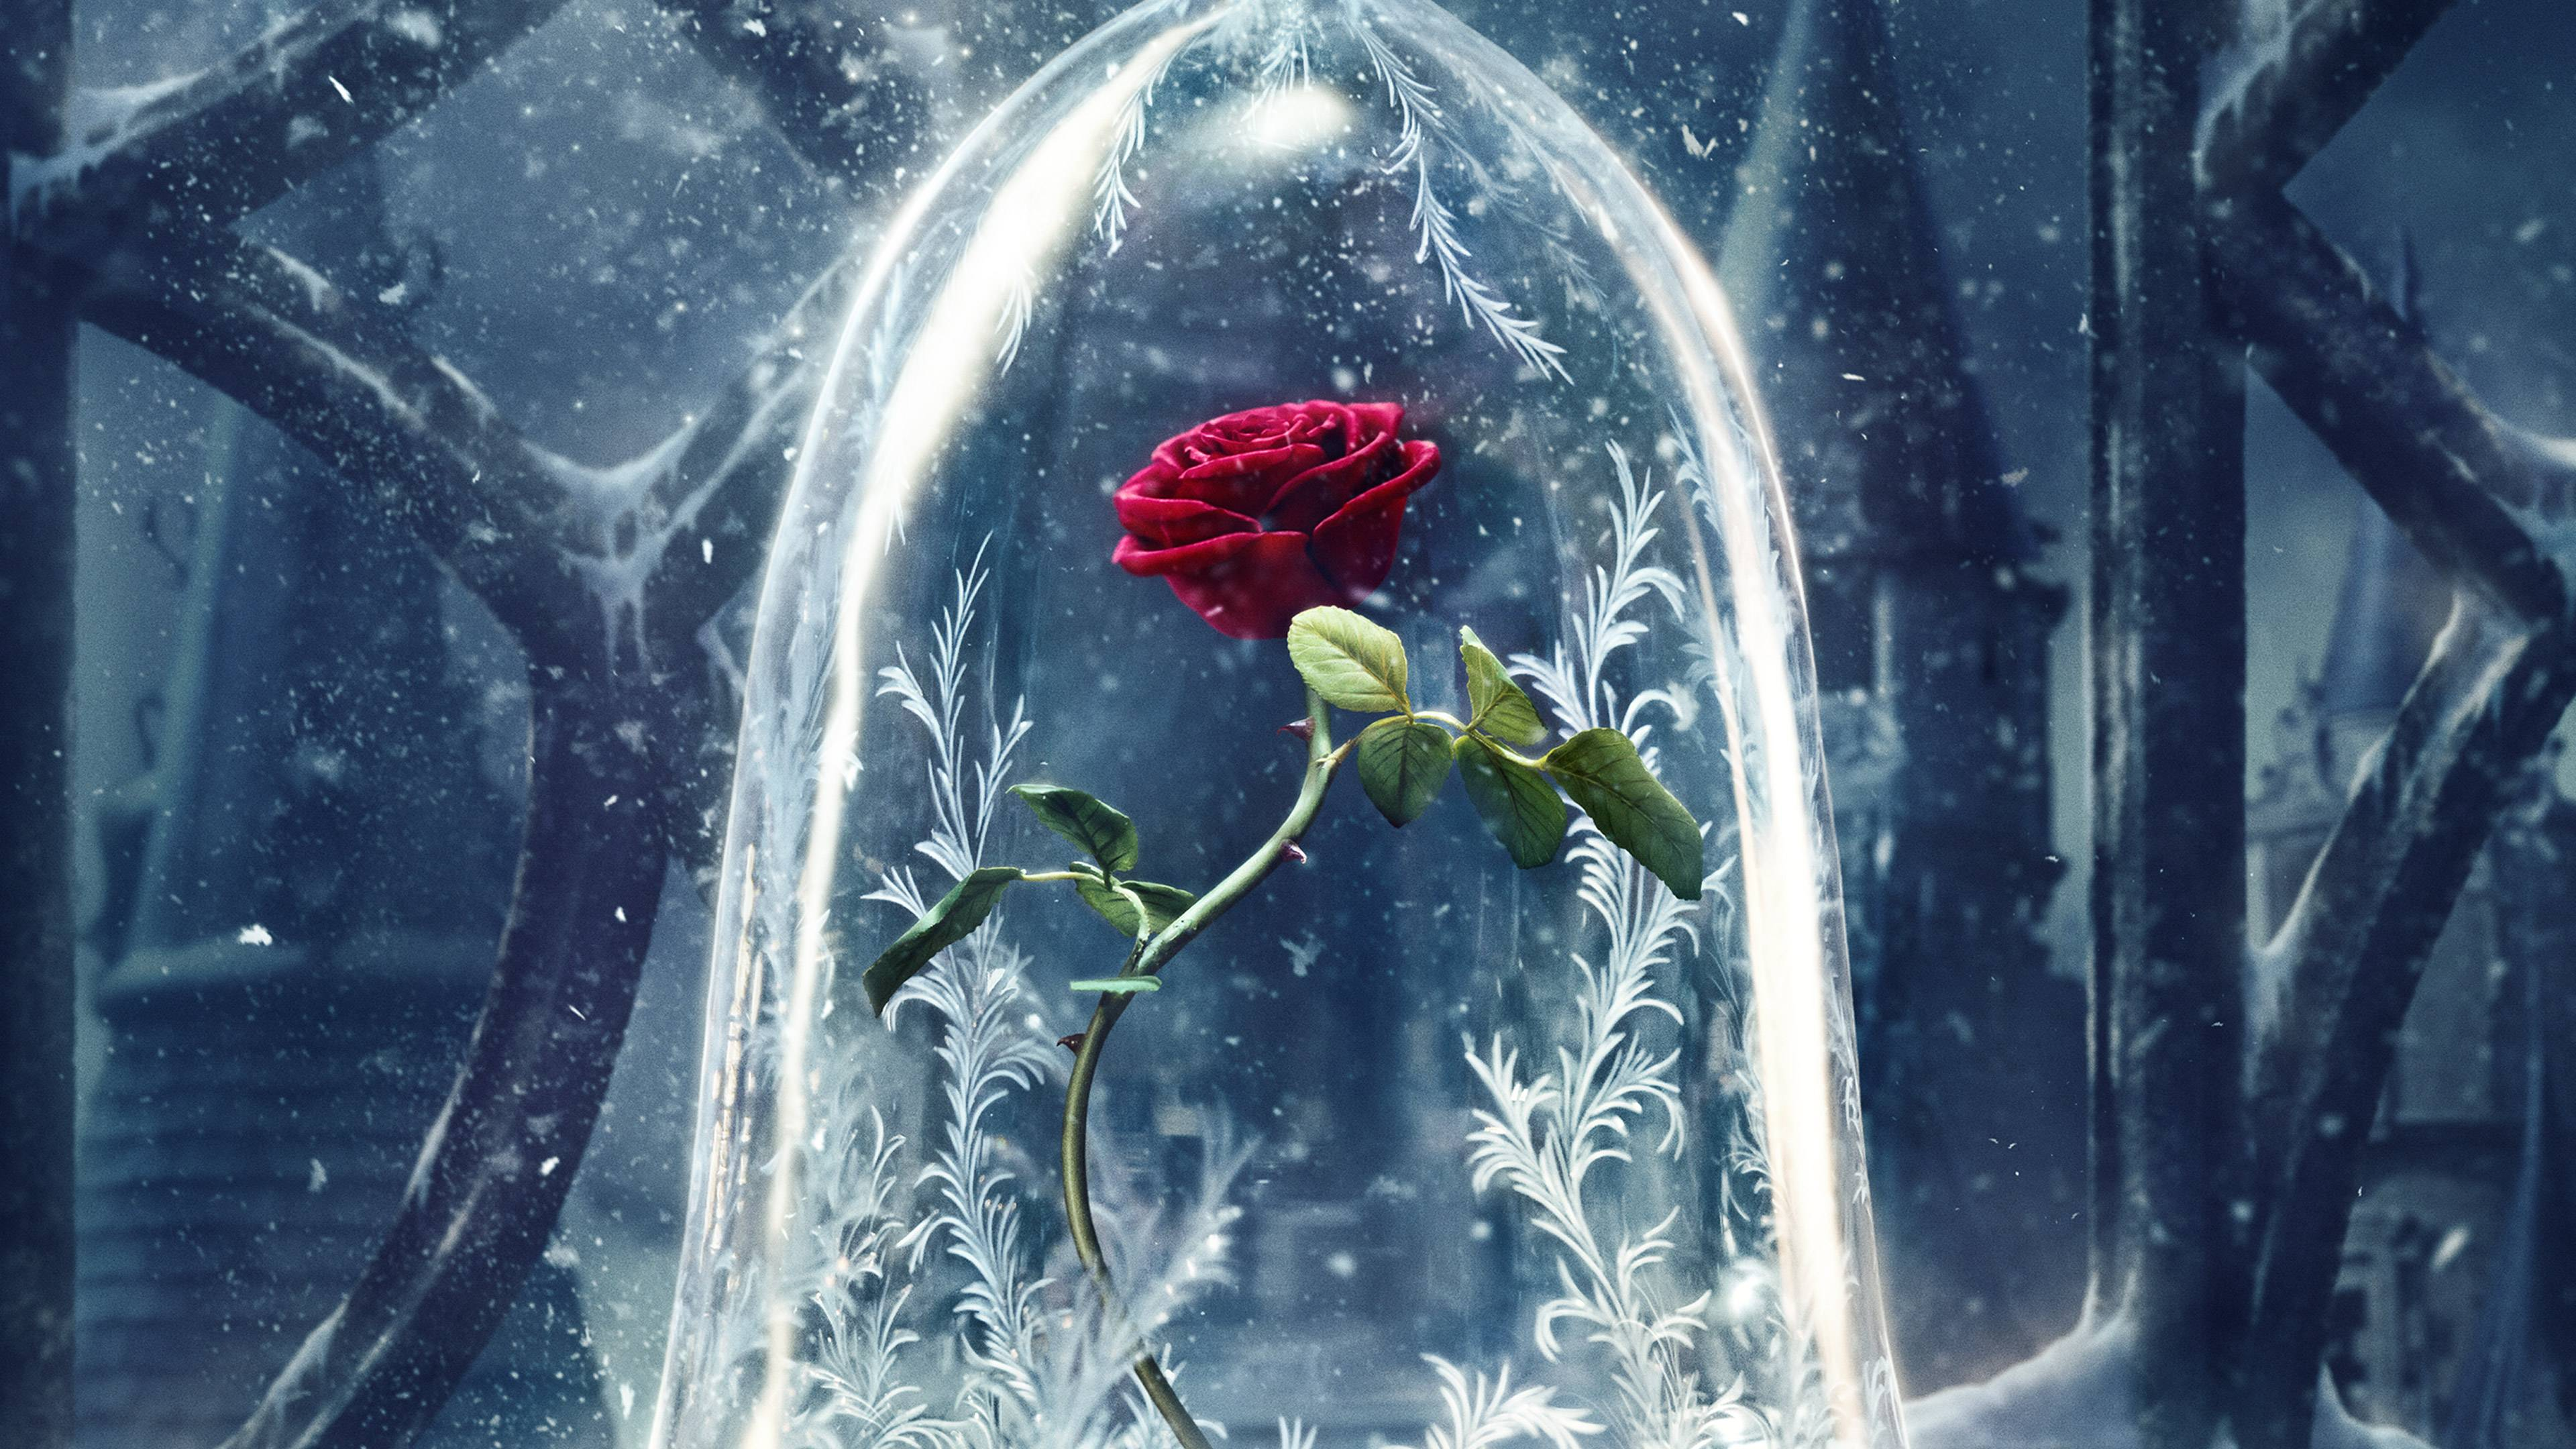 Beauty And The Beast Original 4k Rose From Beauty And The